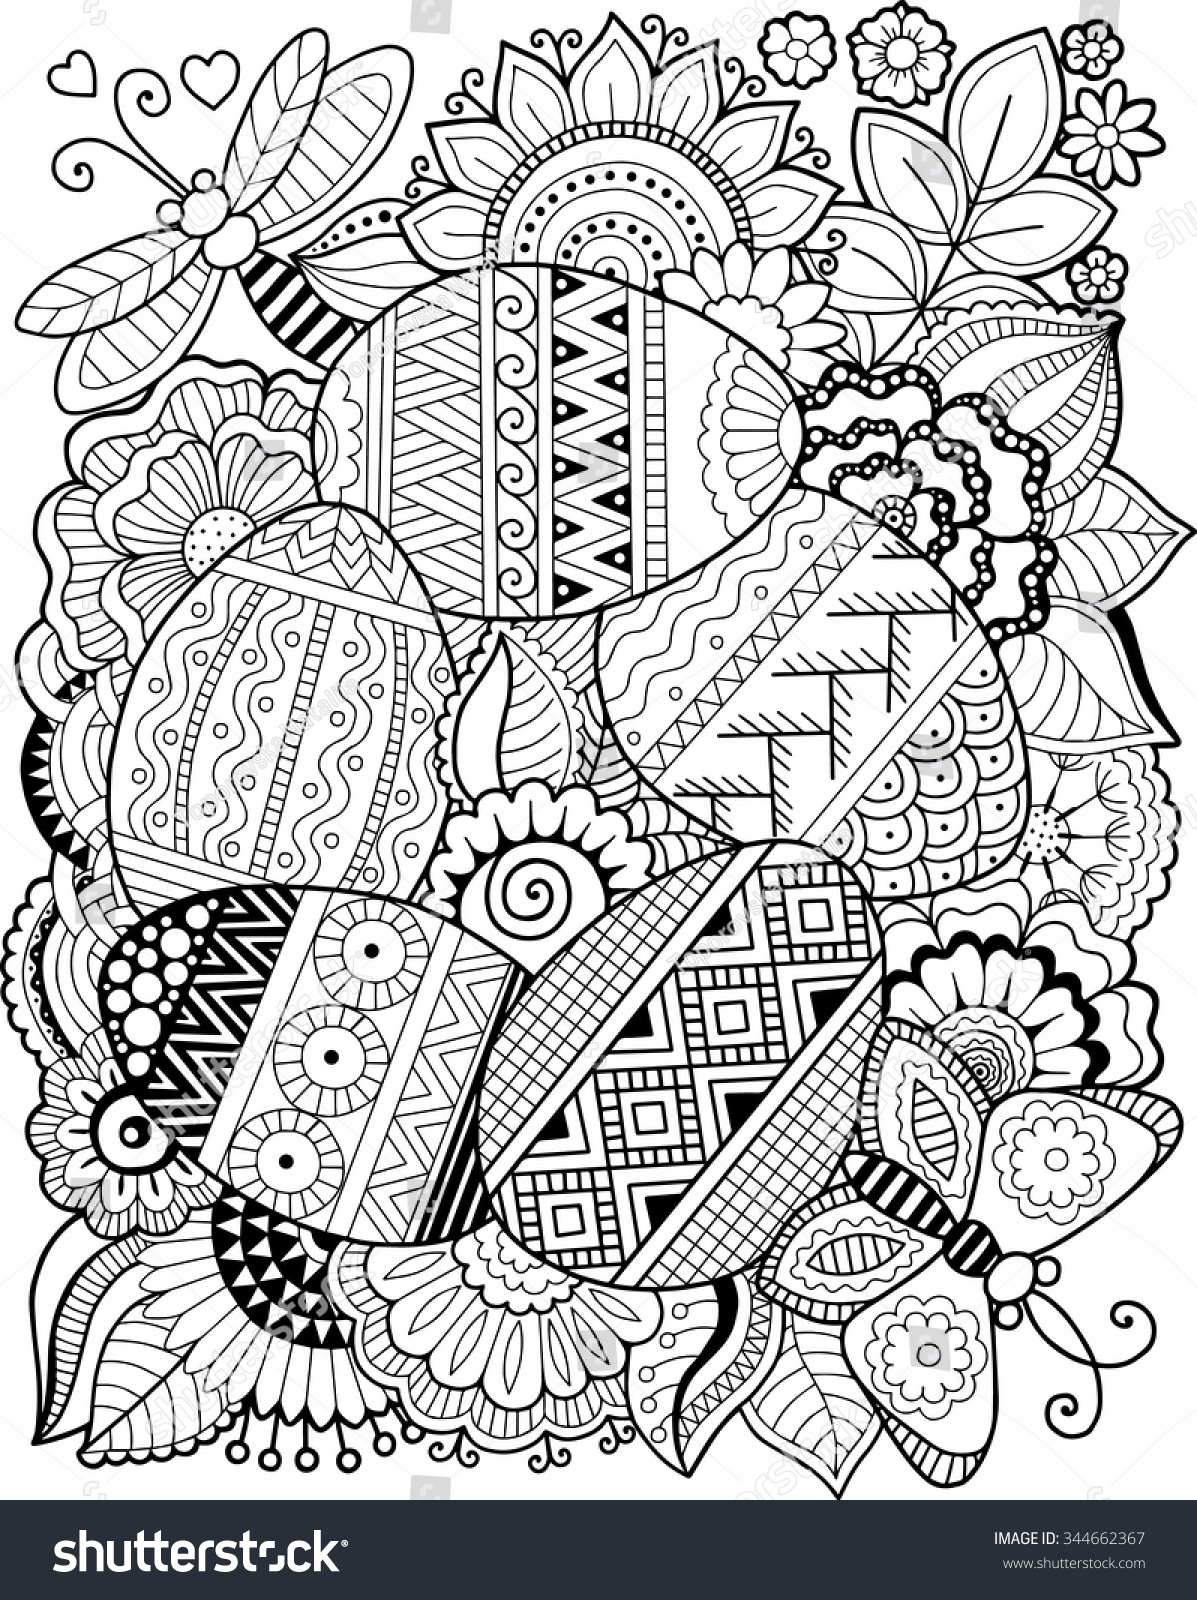 Vector Coloring Book Adult Easter Egg Stock